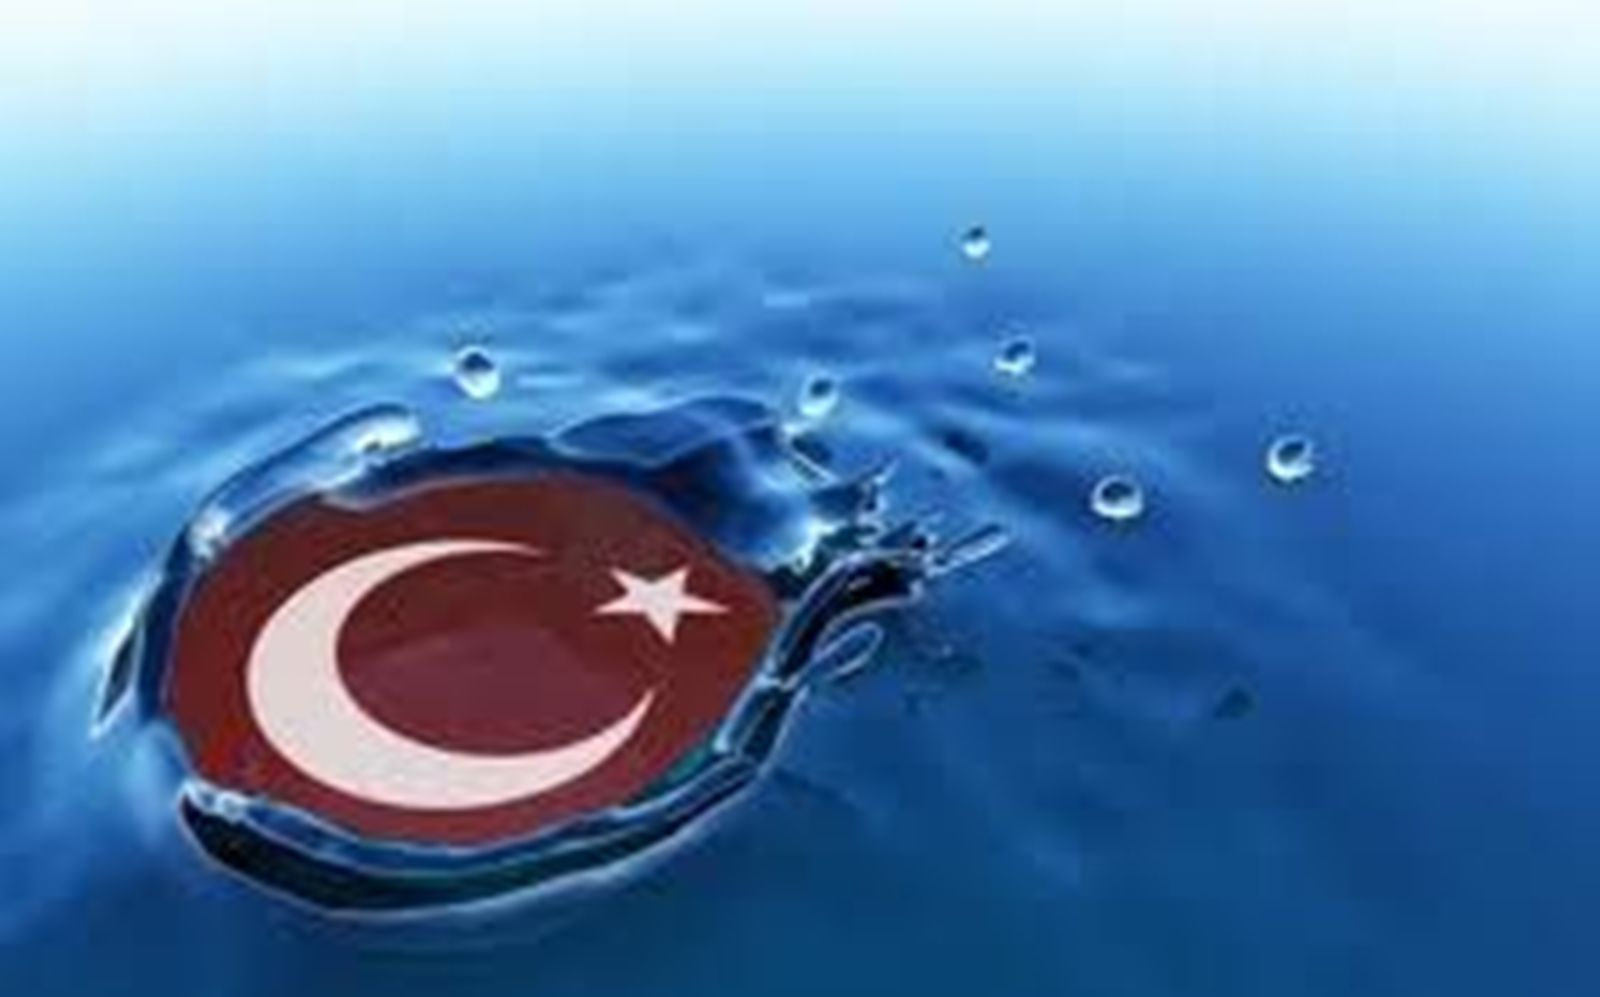 Turkish flag symbol in water